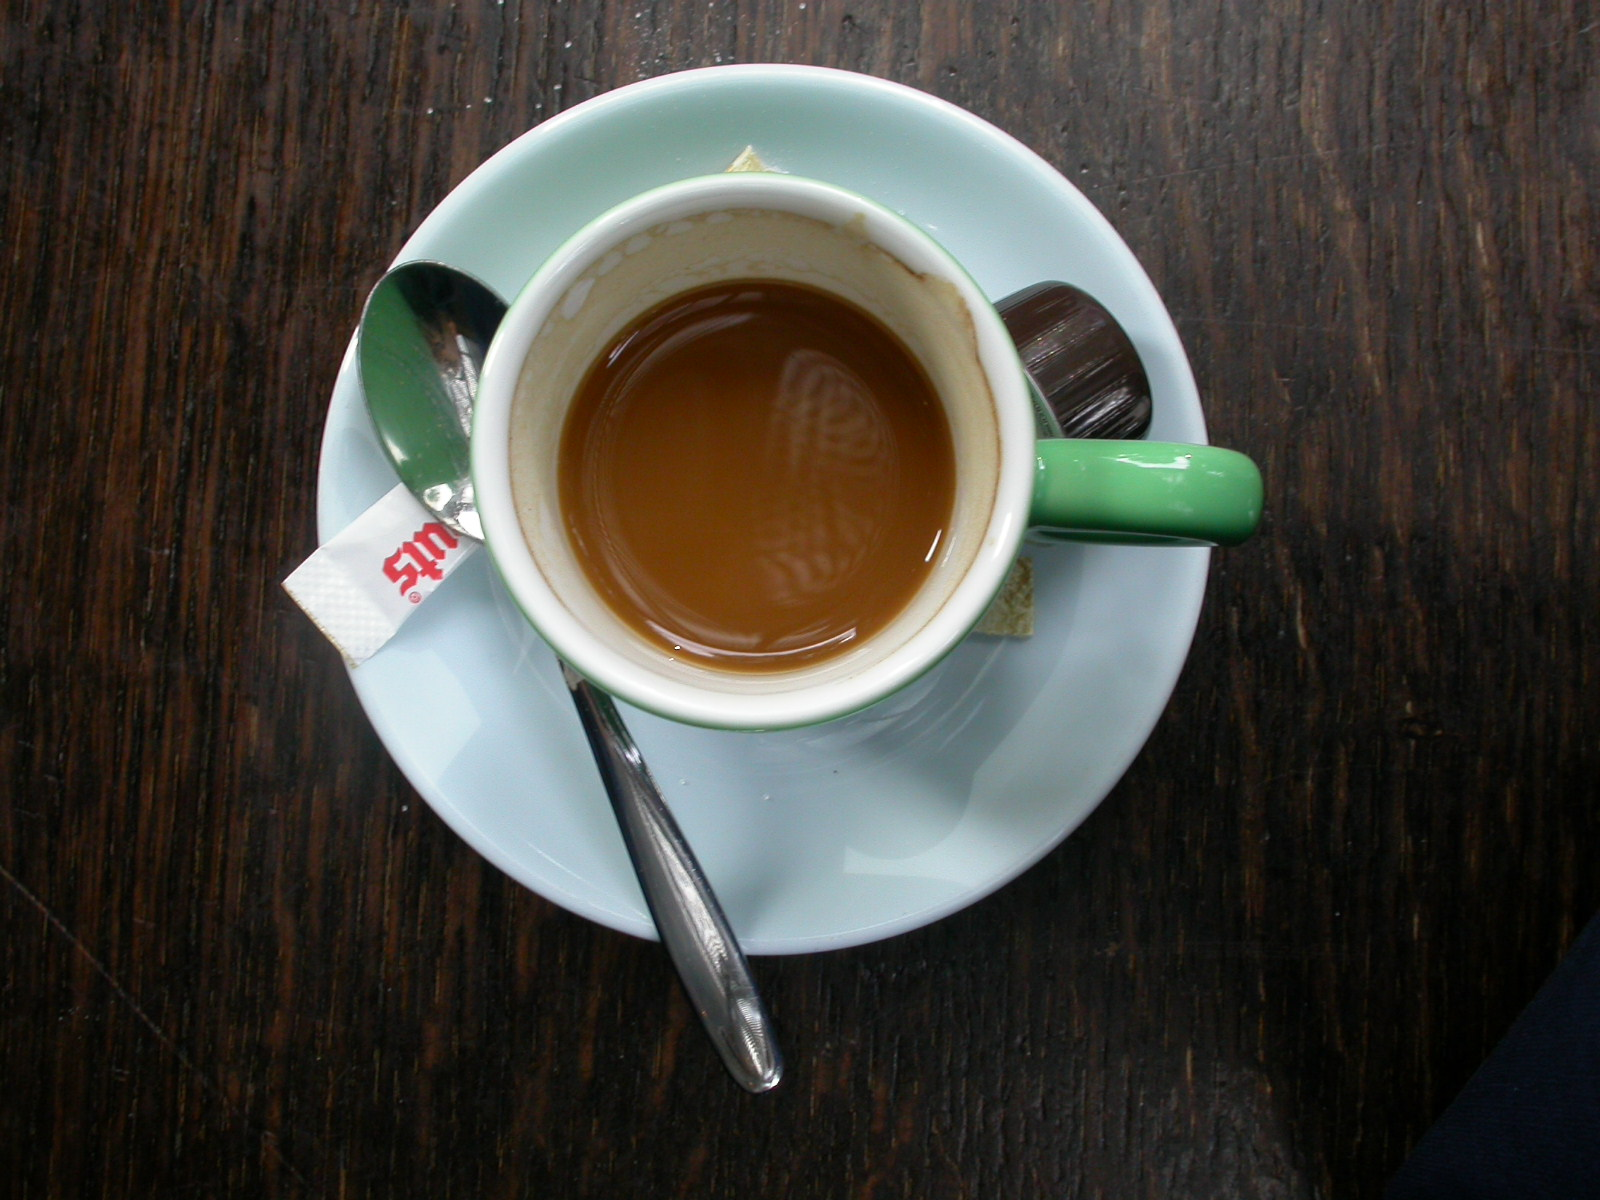 Americano Coffee English File Dutch Coffe Jpg Wikimedia Commons